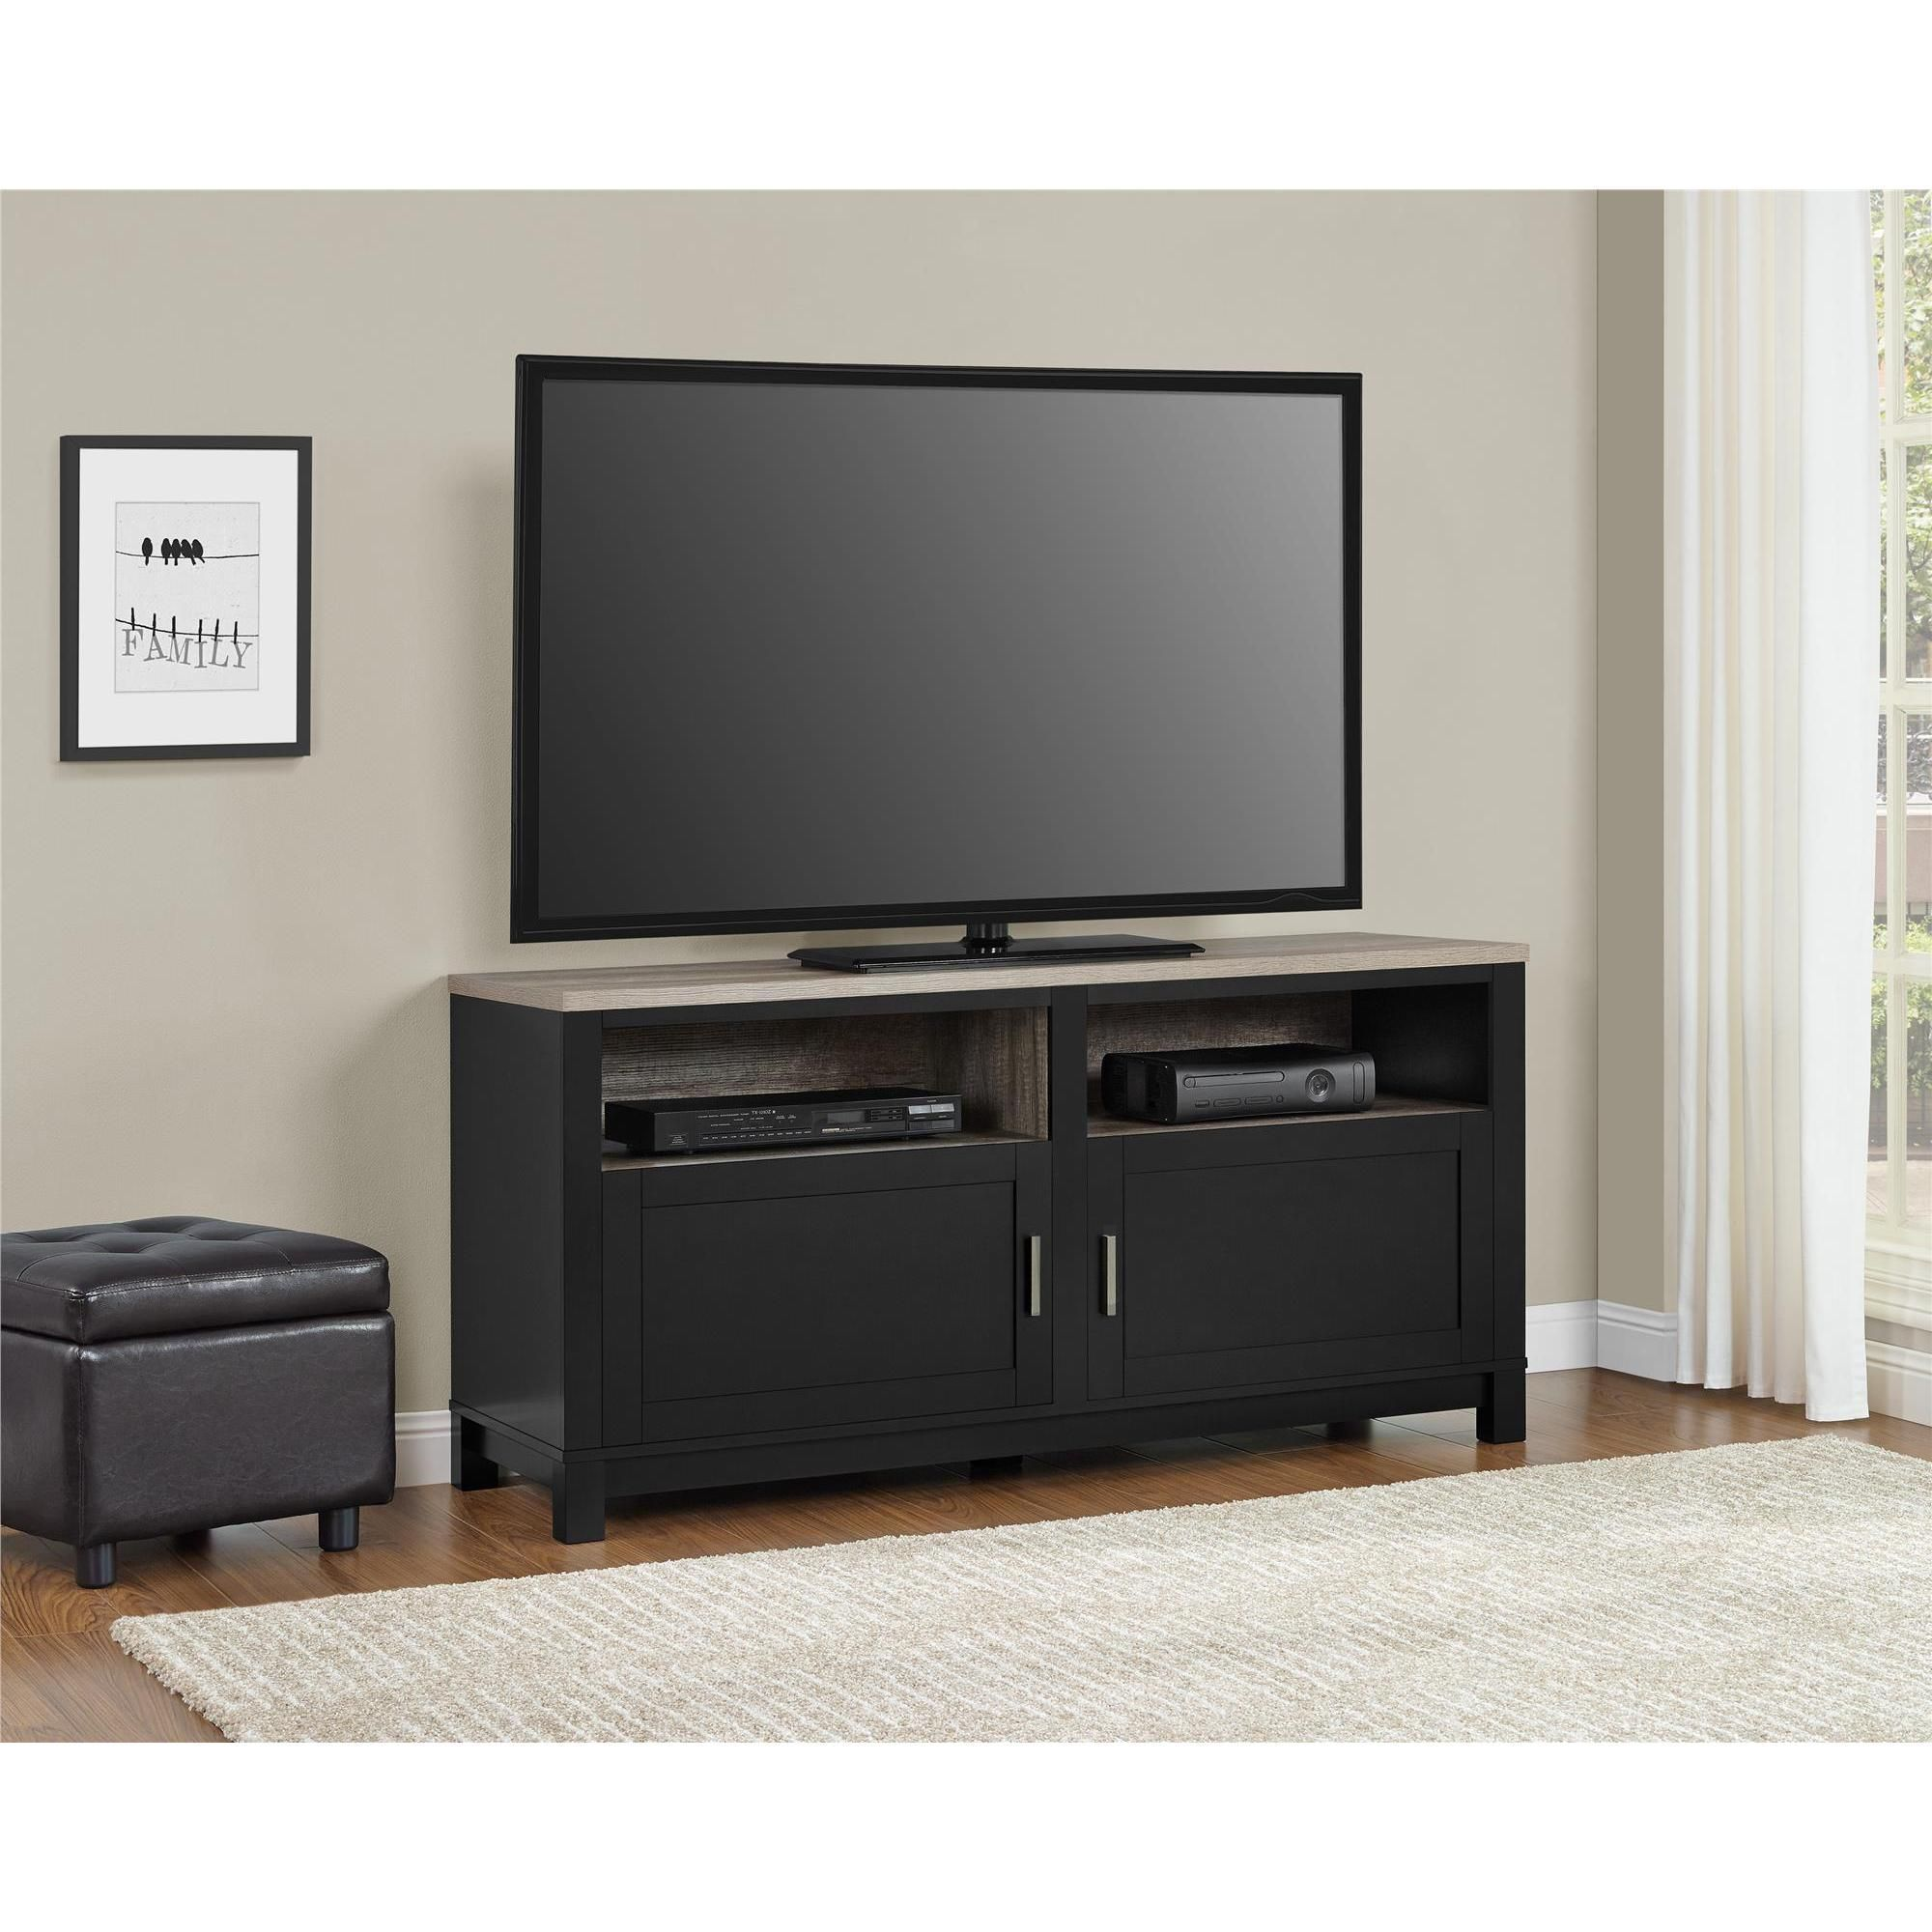 Porch Den Wicker Park Le Moyne Black 60 Inch Tv Stand Tv Stand